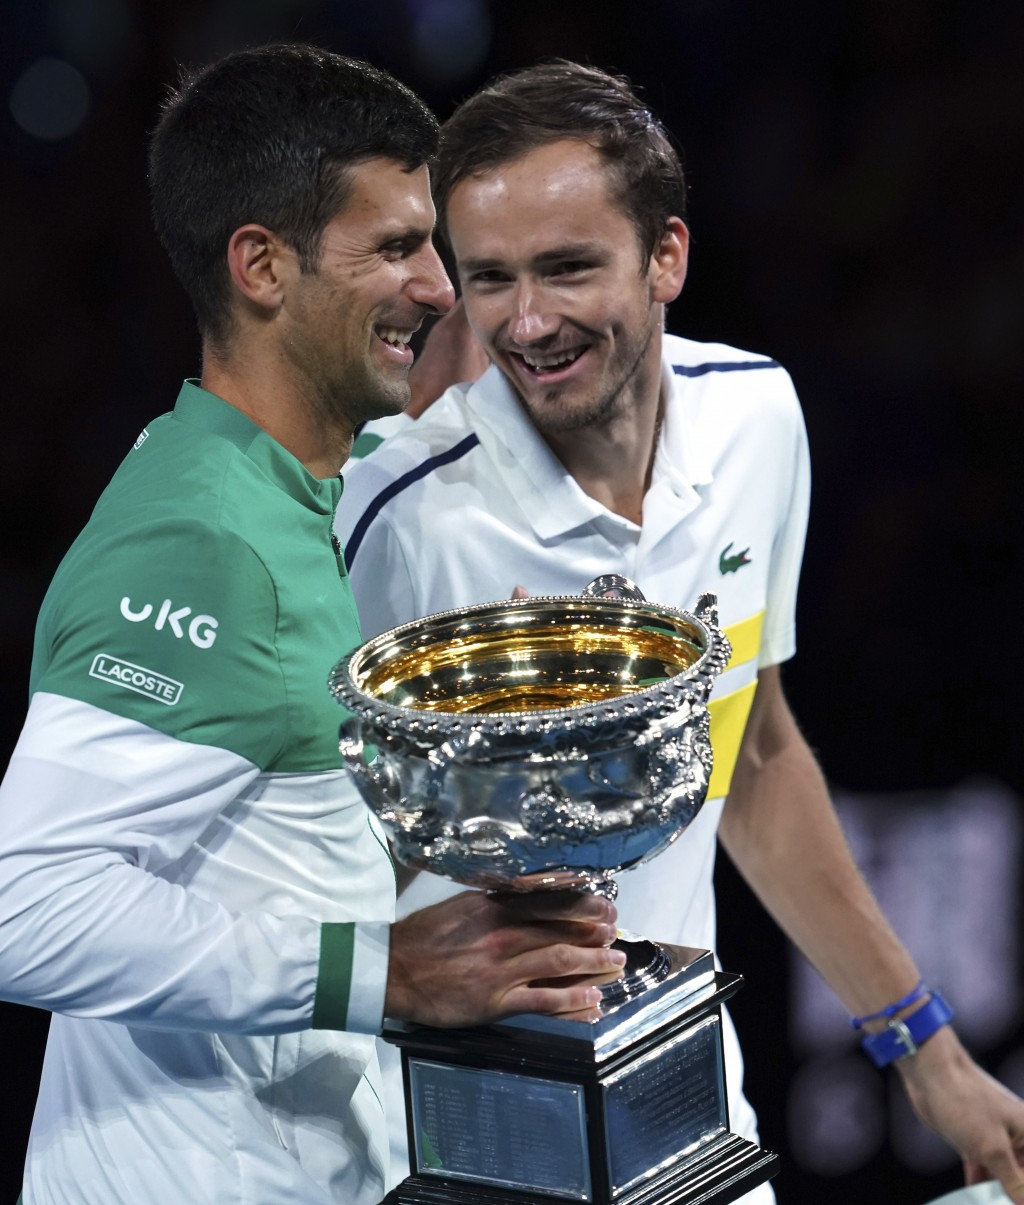 Serbia's Novak Djokovic, left, holds the Norman Brookes Challenge Cup as he talks with runner-up Russia's Daniil Medvedev after winning the men's sing...